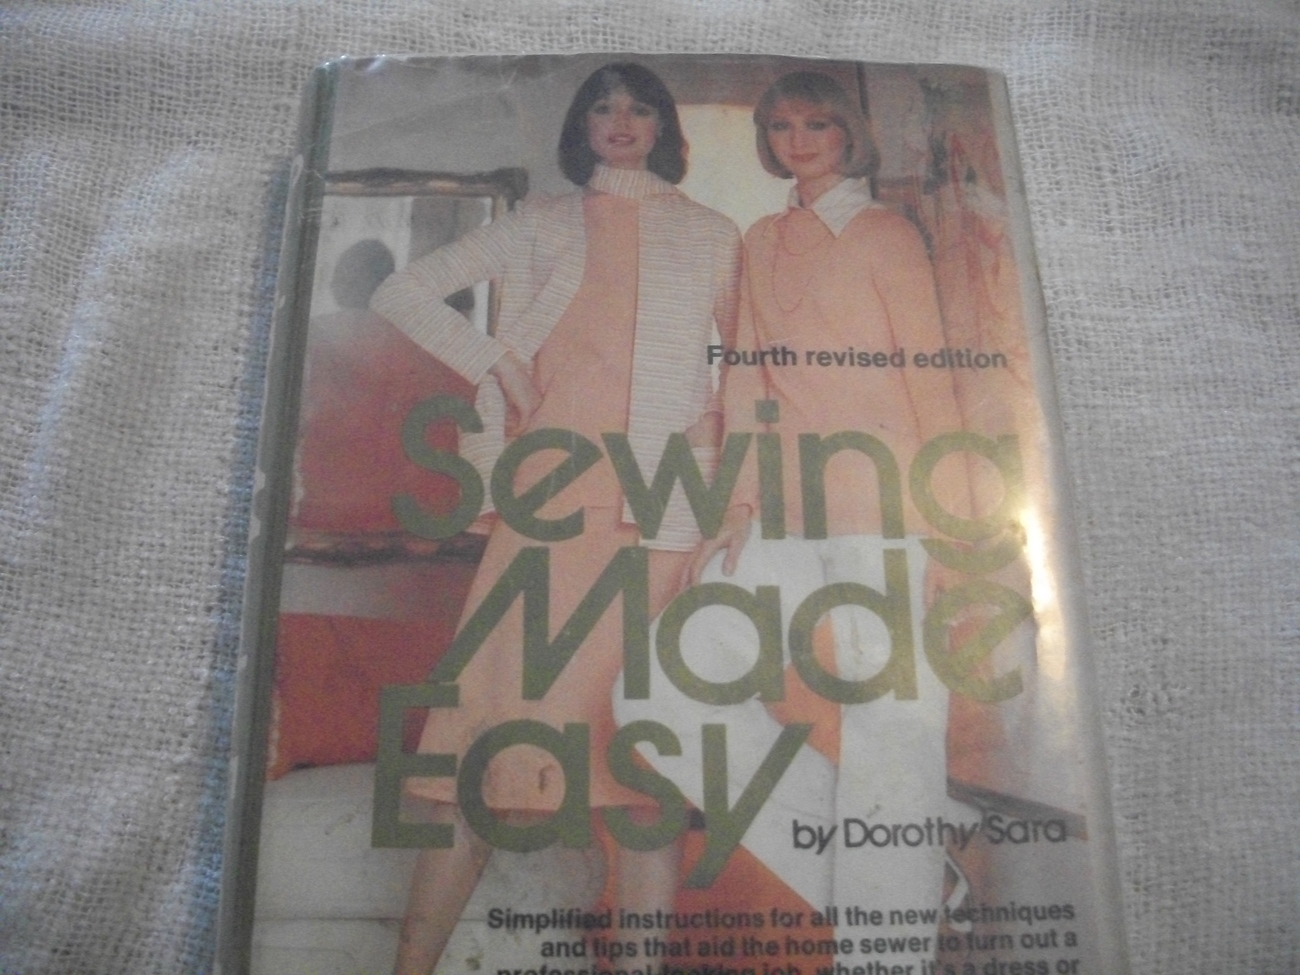 Primary image for Sewing Made Easy Book